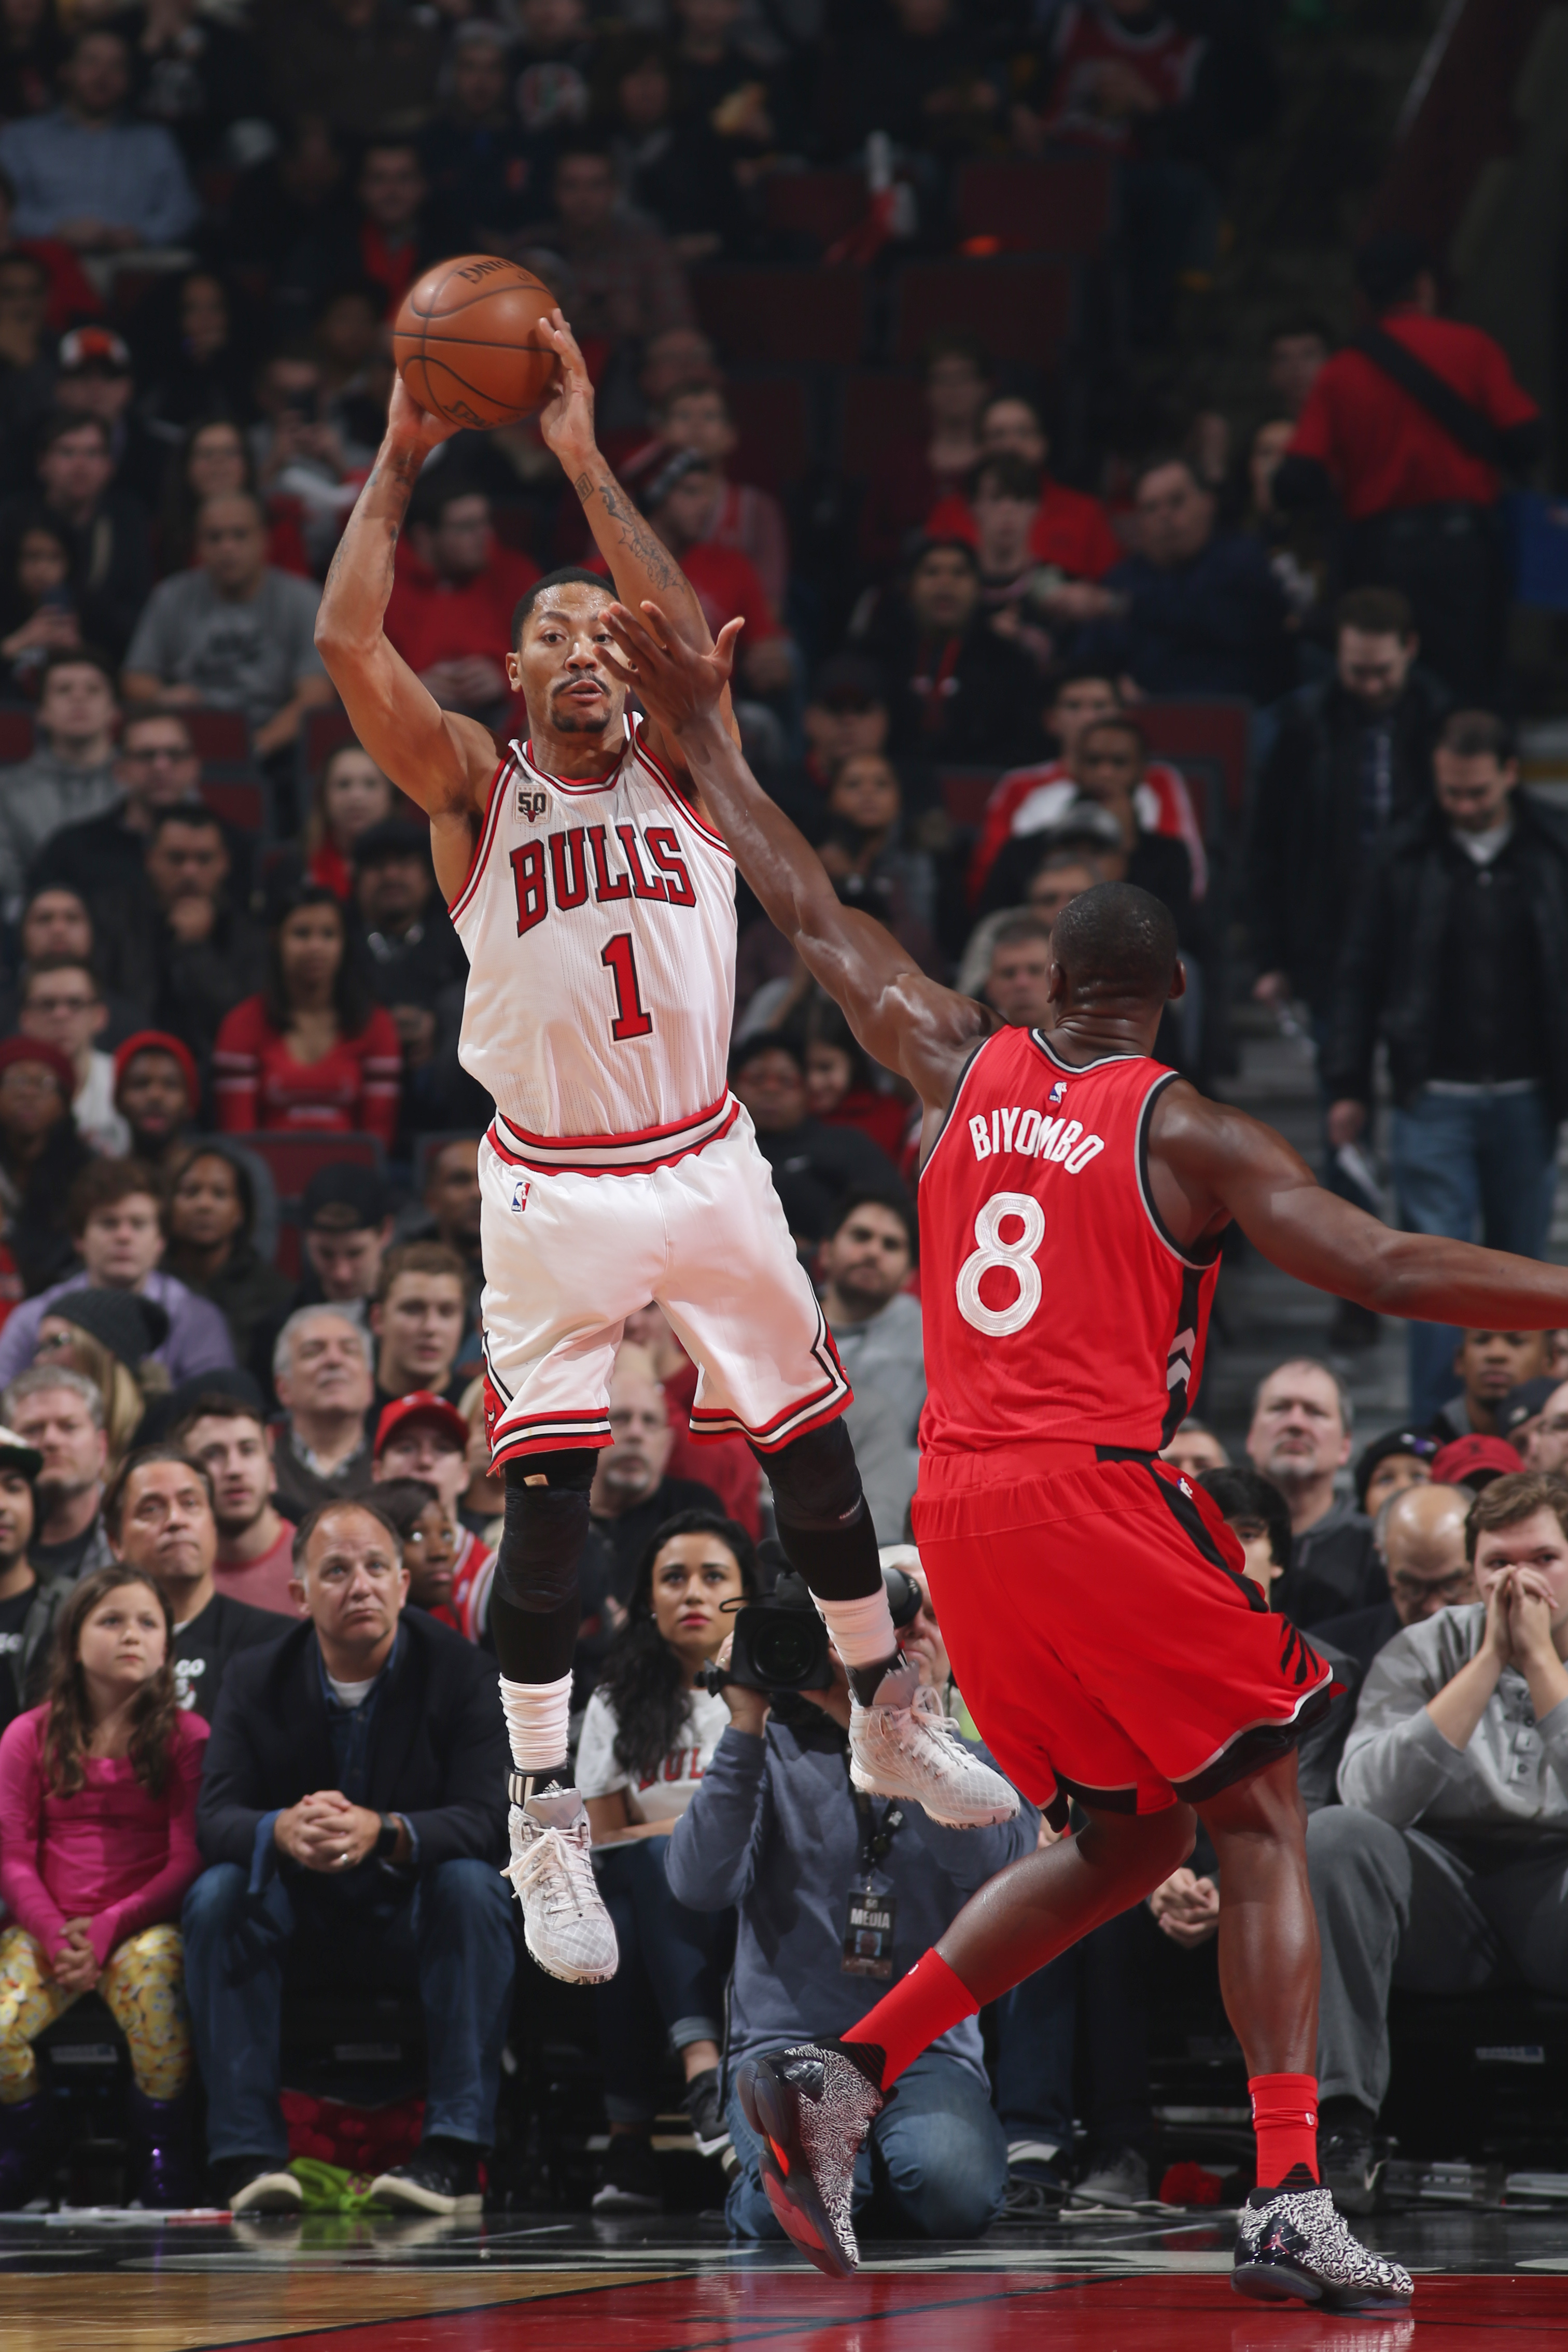 CHICAGO, IL - DECEMBER 28: Derrick Rose #1 of the Chicago Bulls moves the ball against Bismack Biyombo #8 of the Toronto Raptors during the game on December 28, 2015 at United Center in Chicago, Illinois. (Photo by Gary Dineen/NBAE via Getty Images)